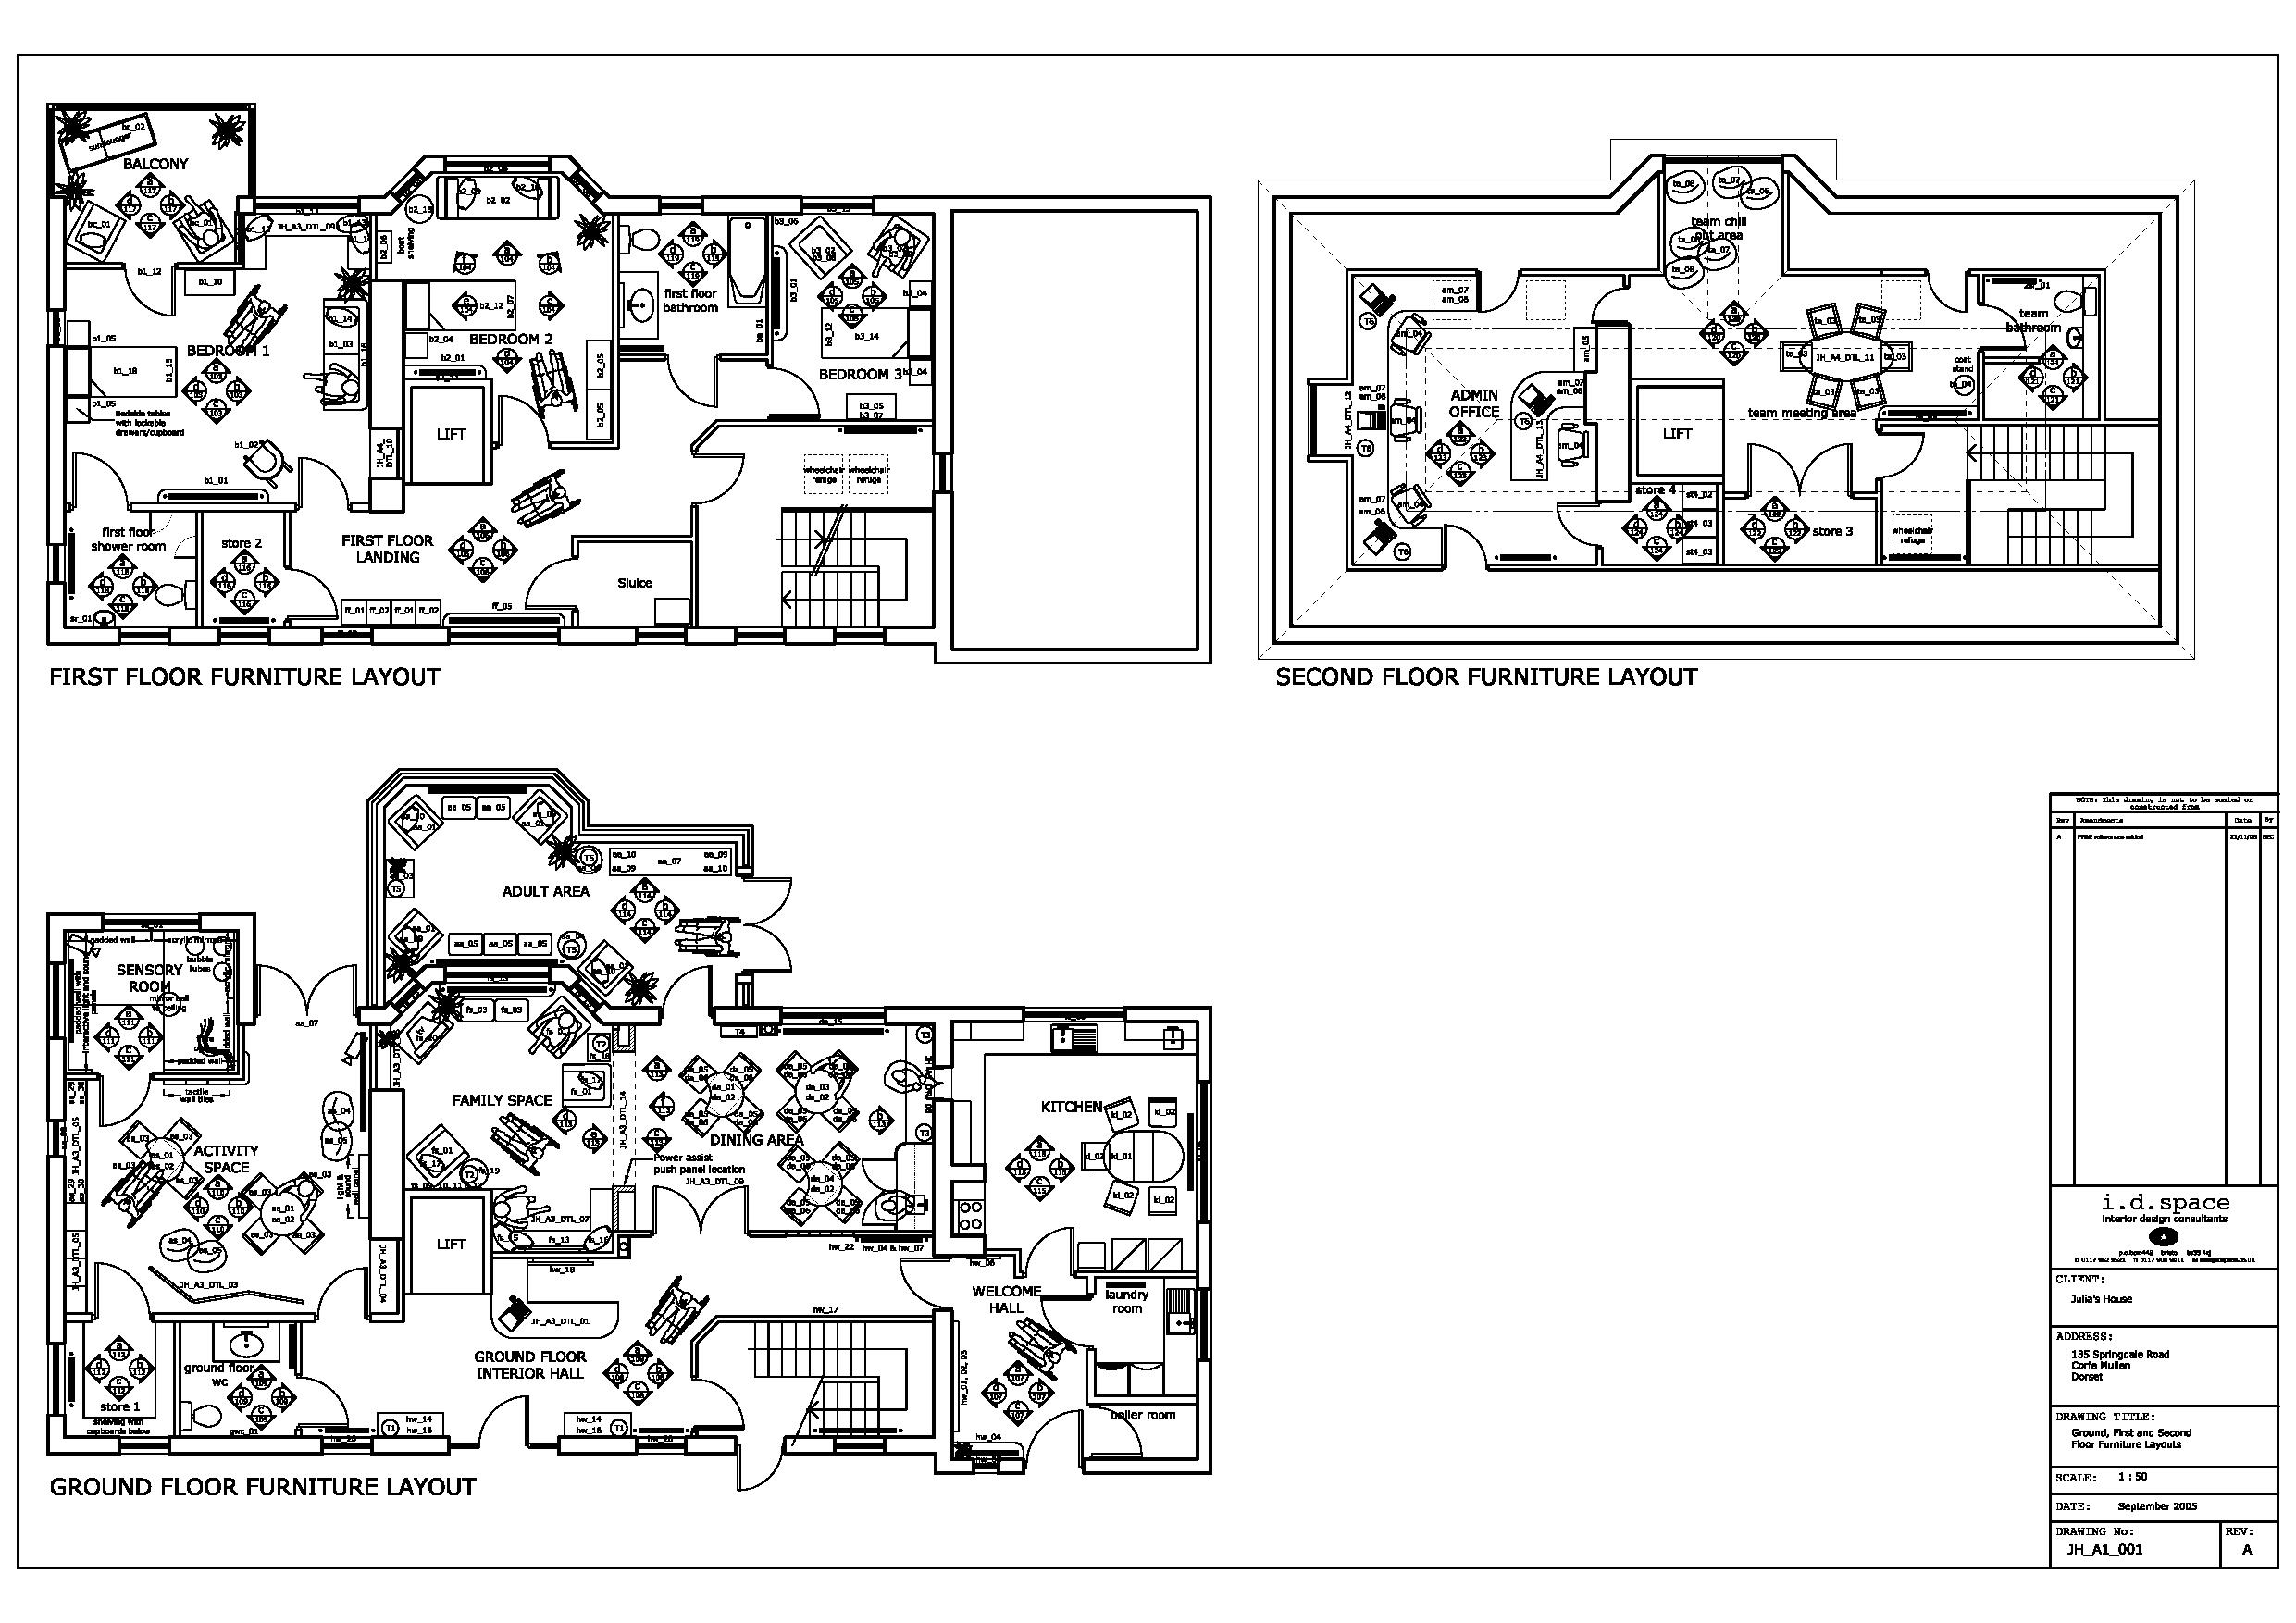 File:Furniture Layout Plan For Hospice